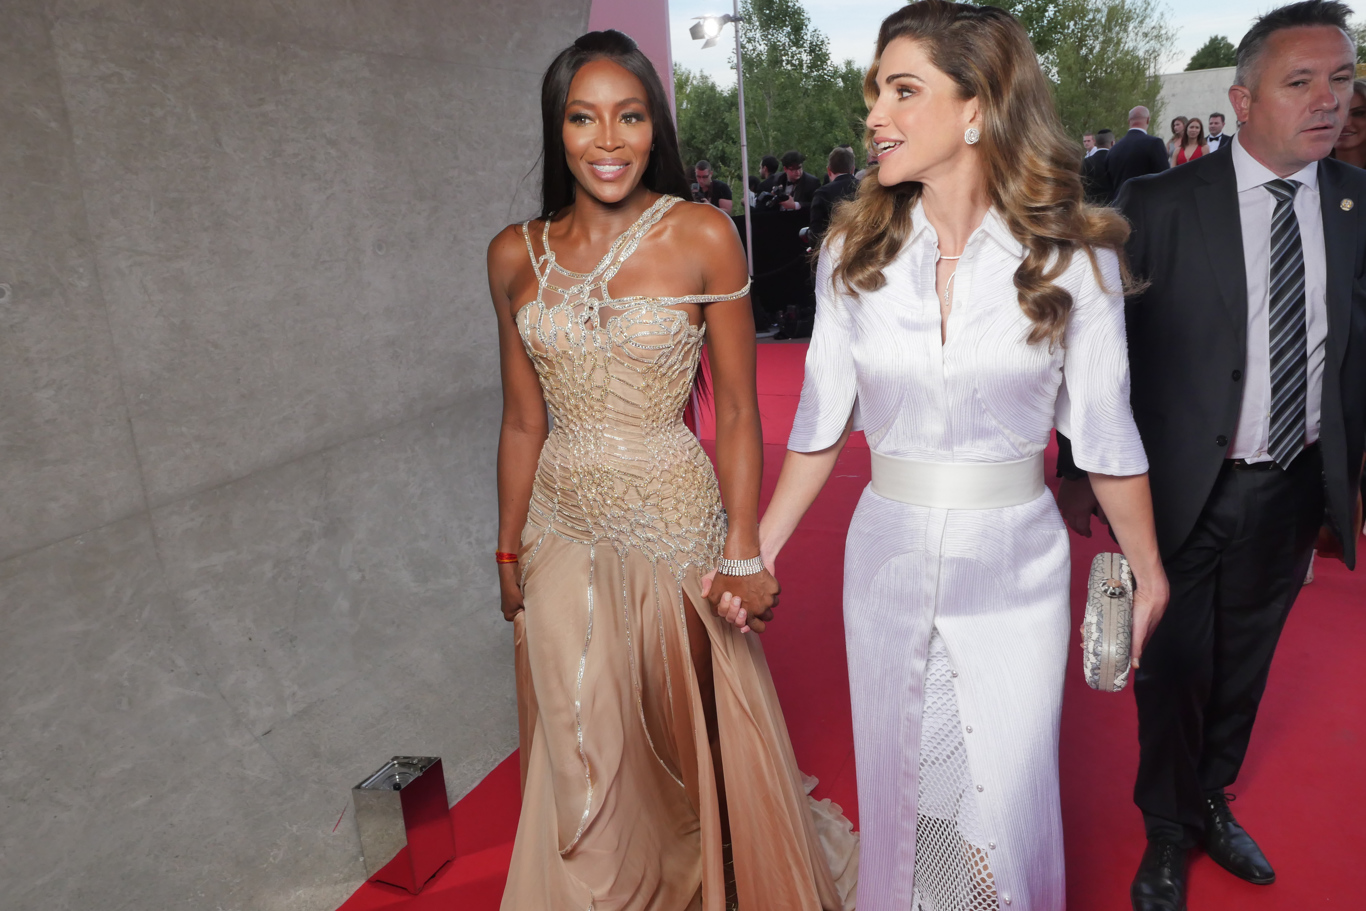 Naomi Campbell and Queen Rania at the Fashion for Relief event in Cannes.